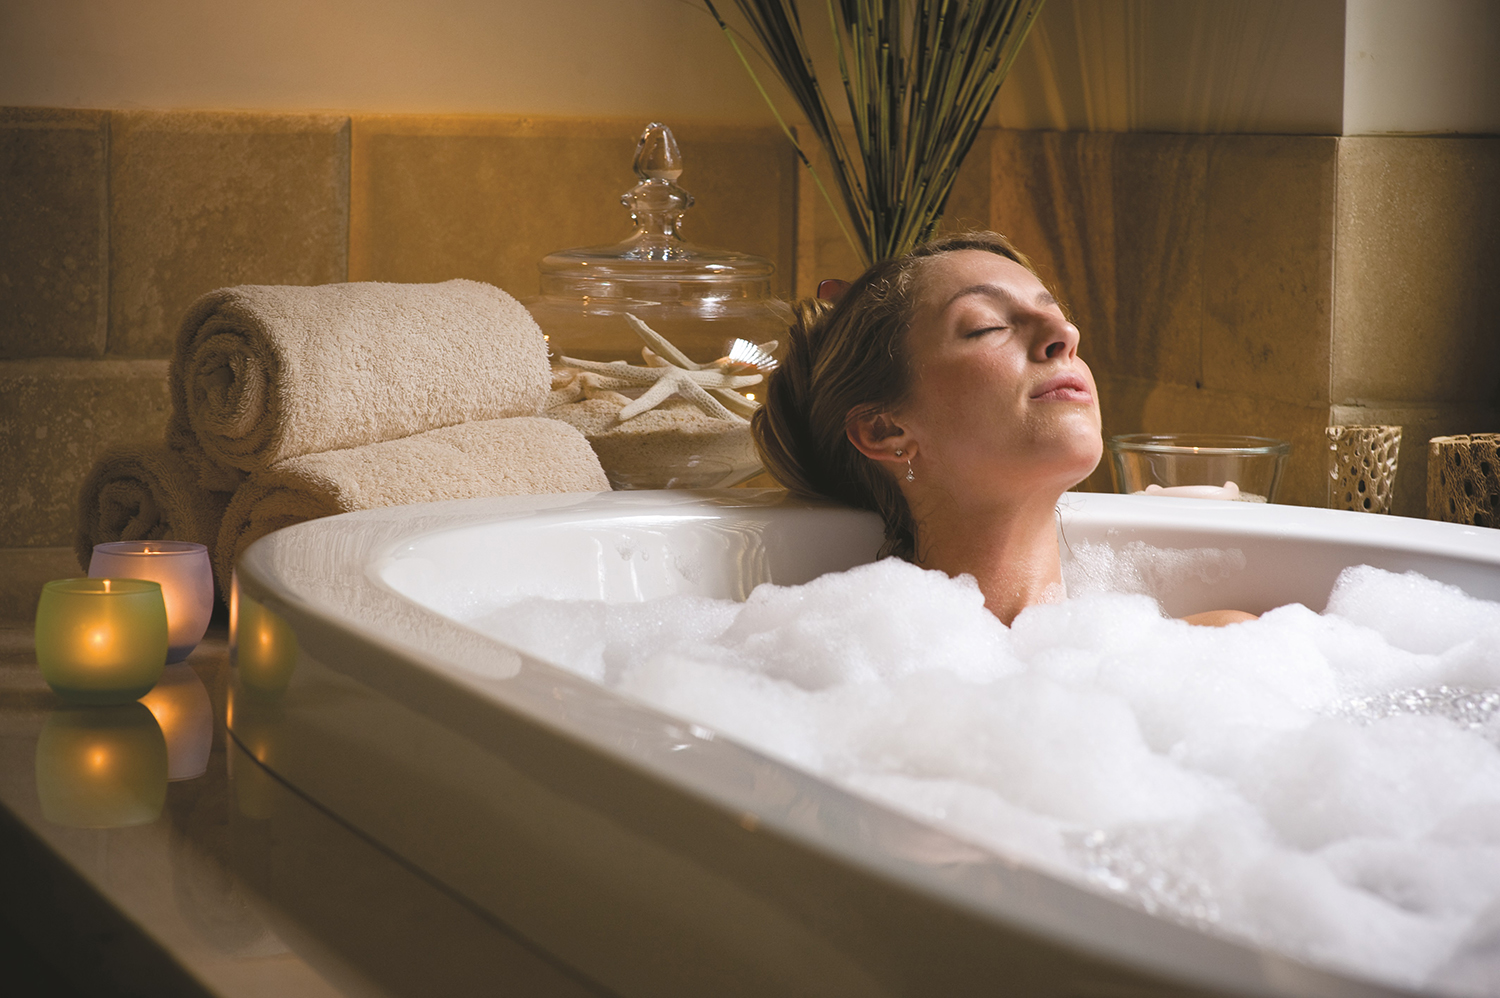 Guests can indulge in a variety of therapeutic baths before or after their treatments.